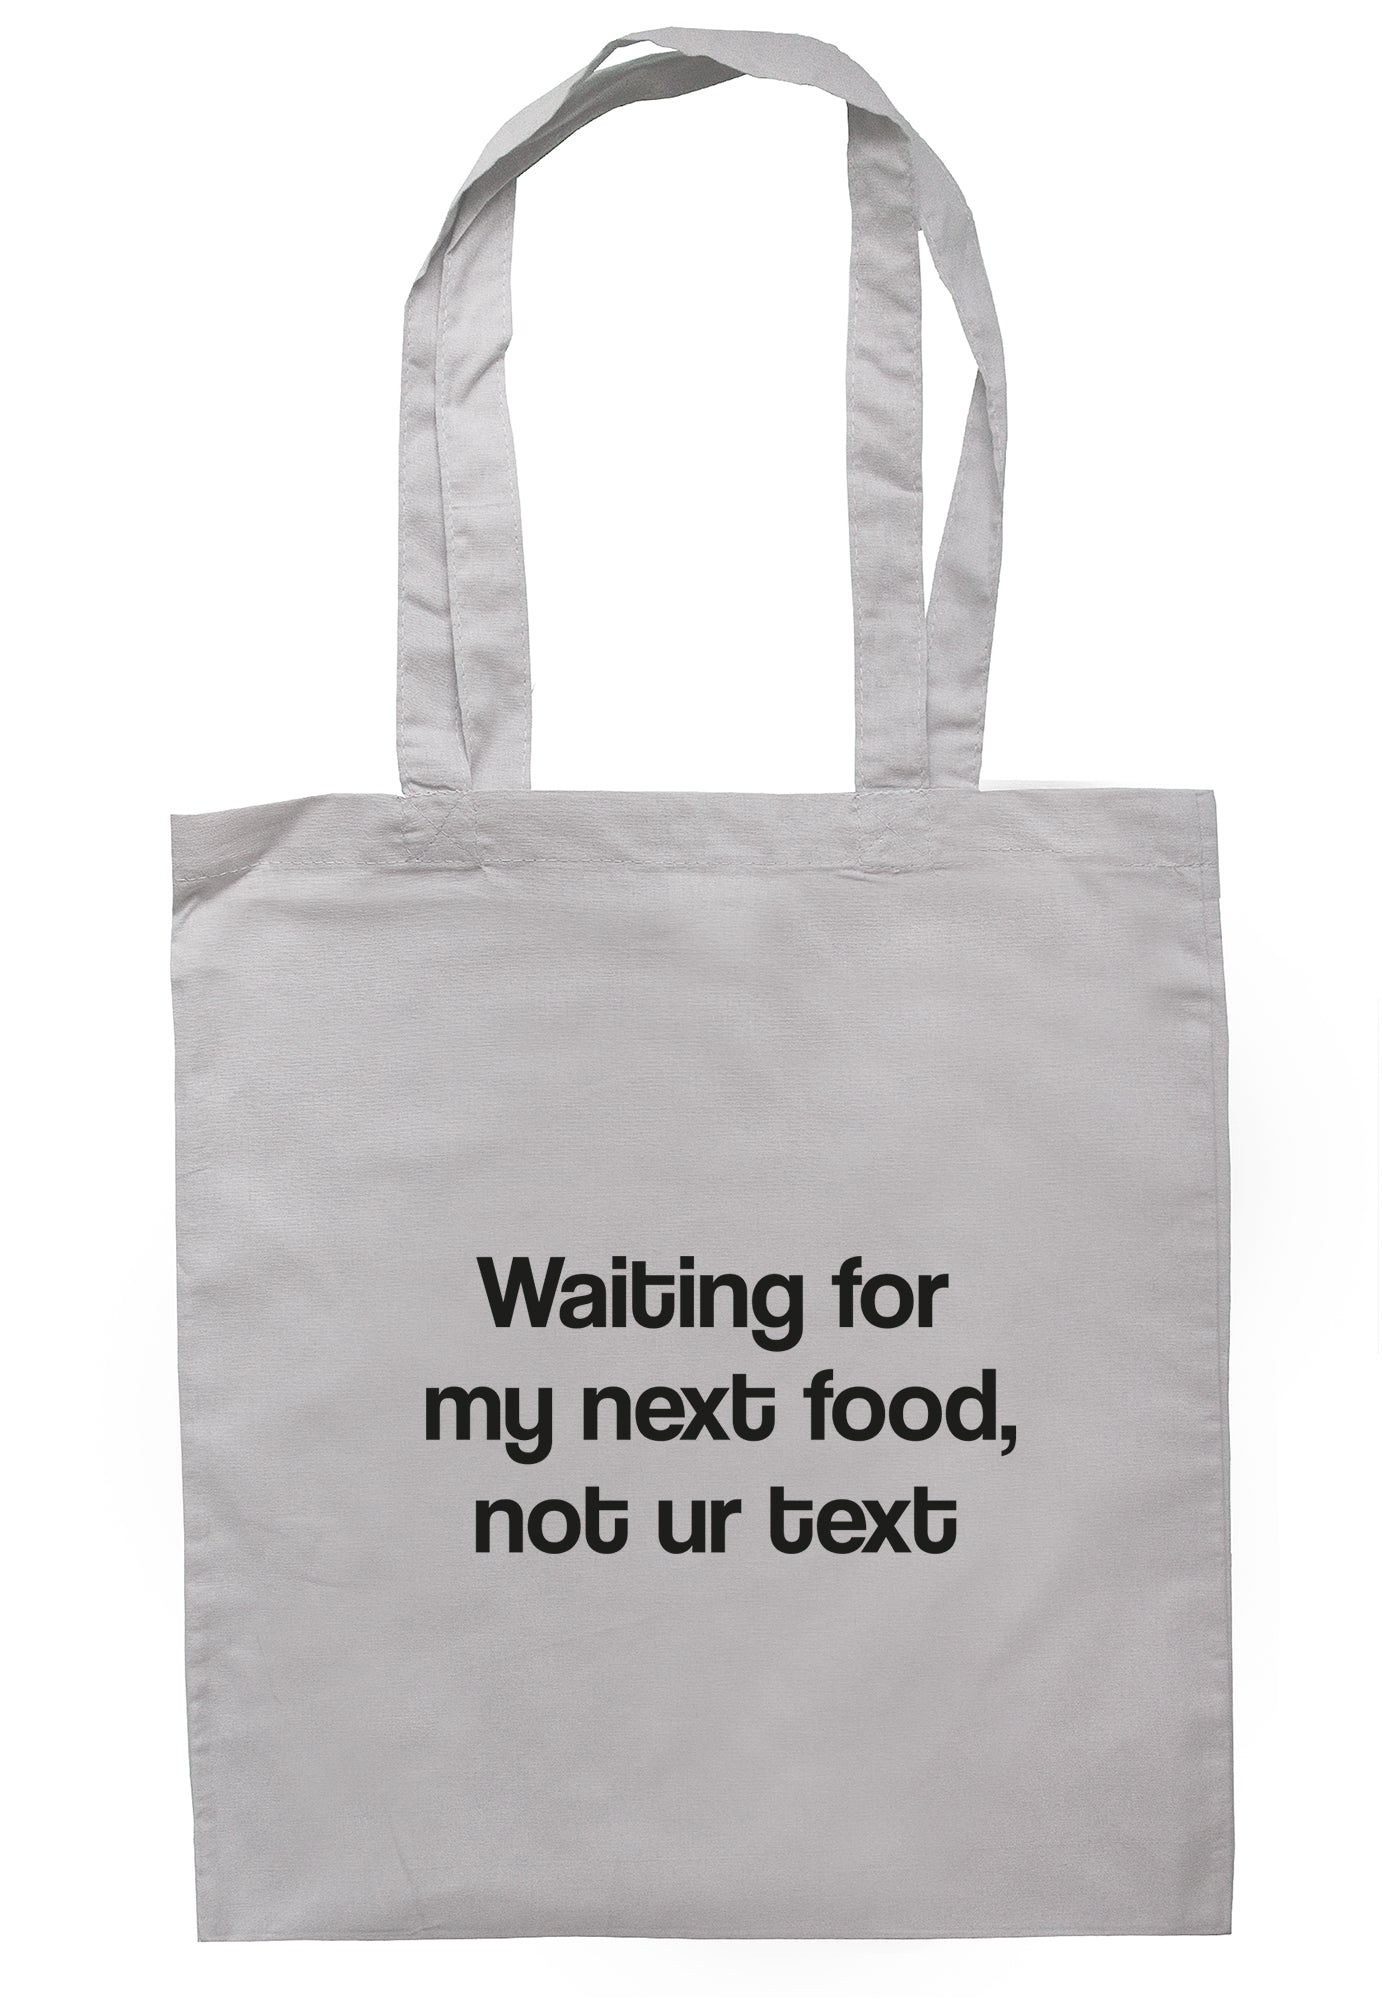 Waiting For My Next Food, Not Ur Text Tote Bag S1210 - Illustrated Identity Ltd.